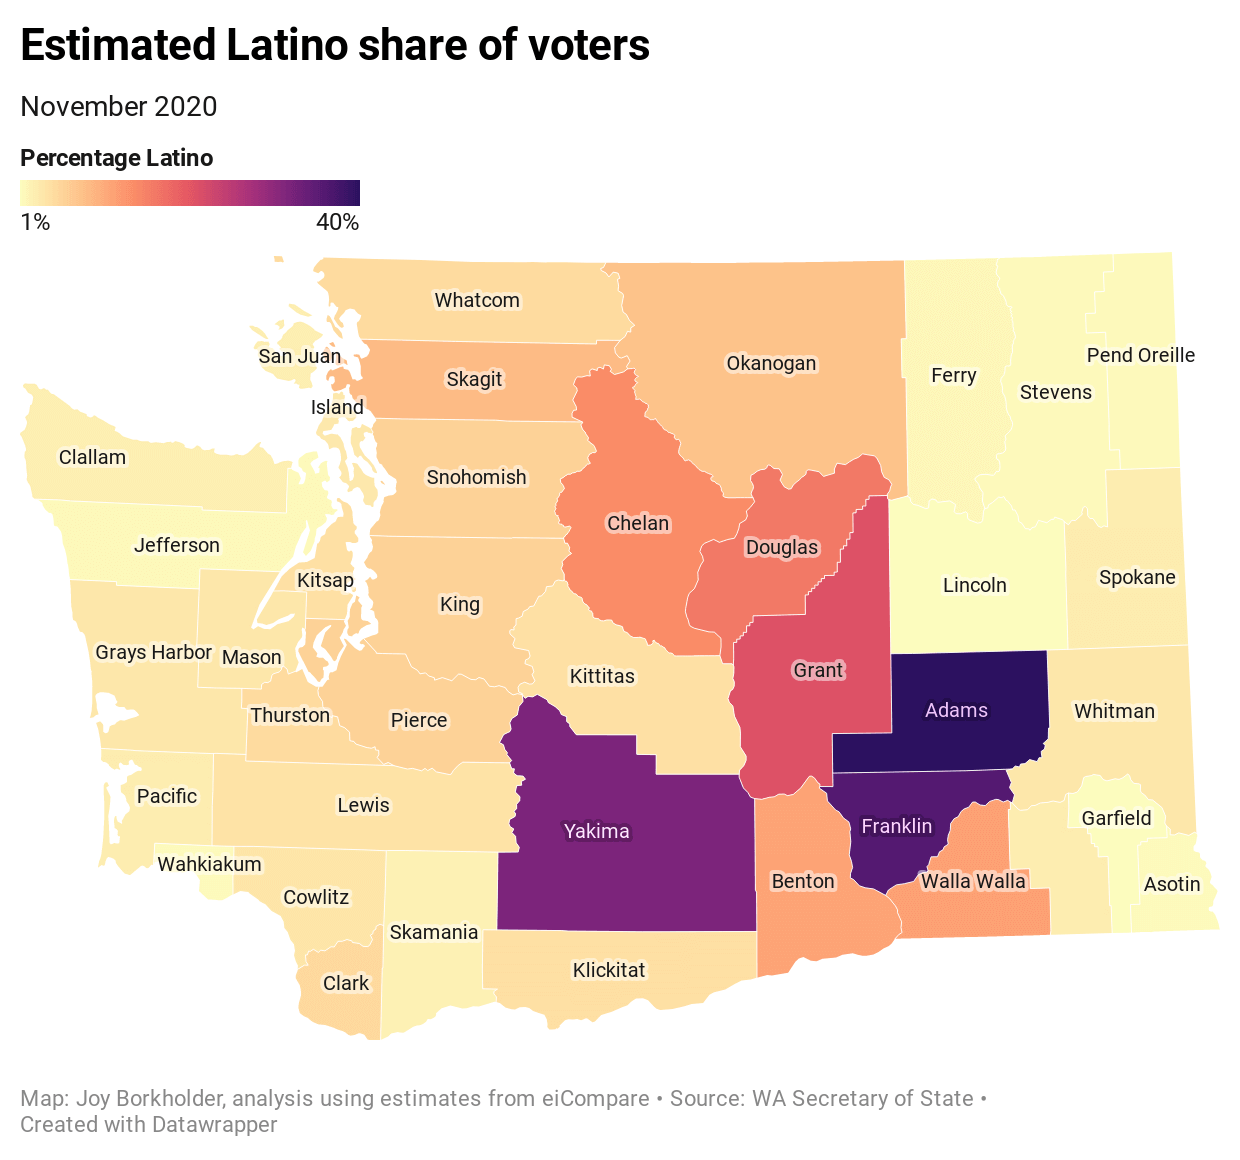 A heat map of the estimated Latino share of voters in Washington state.